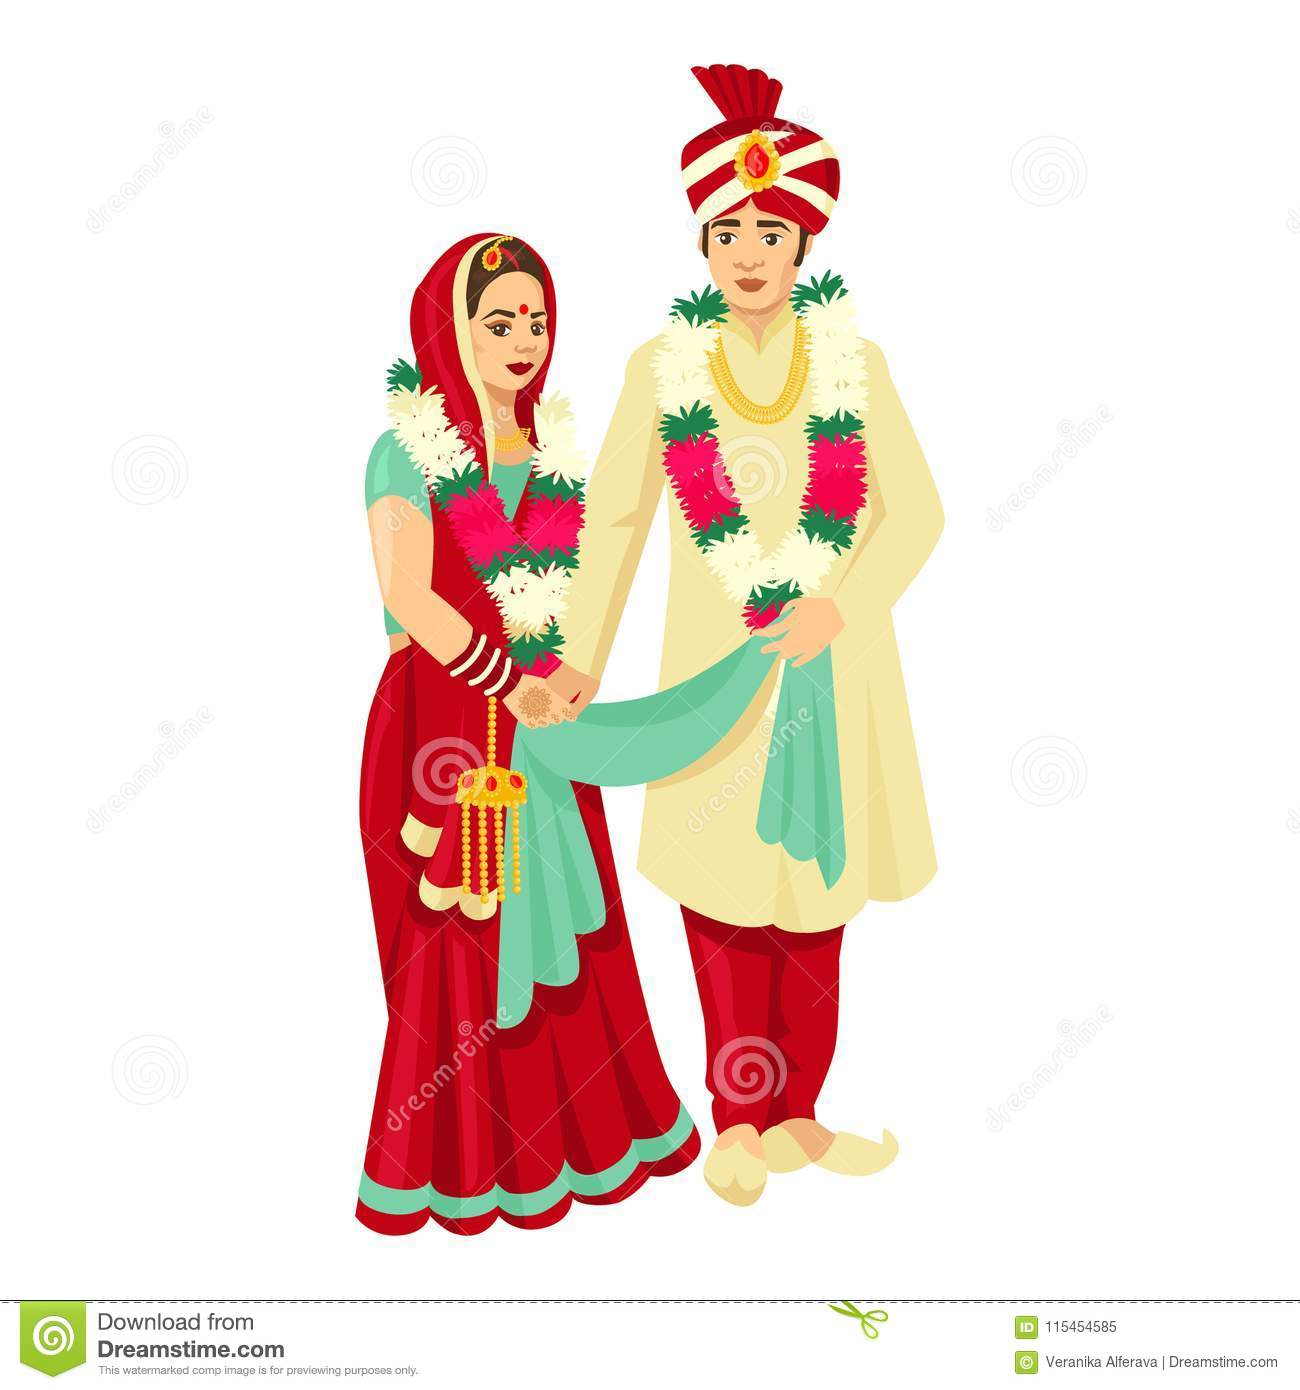 Indian Wedding Couple In Traditional Dresses Vector Design For Wedding Invitation Stock Vector Illustration Of Henna Card 115454585